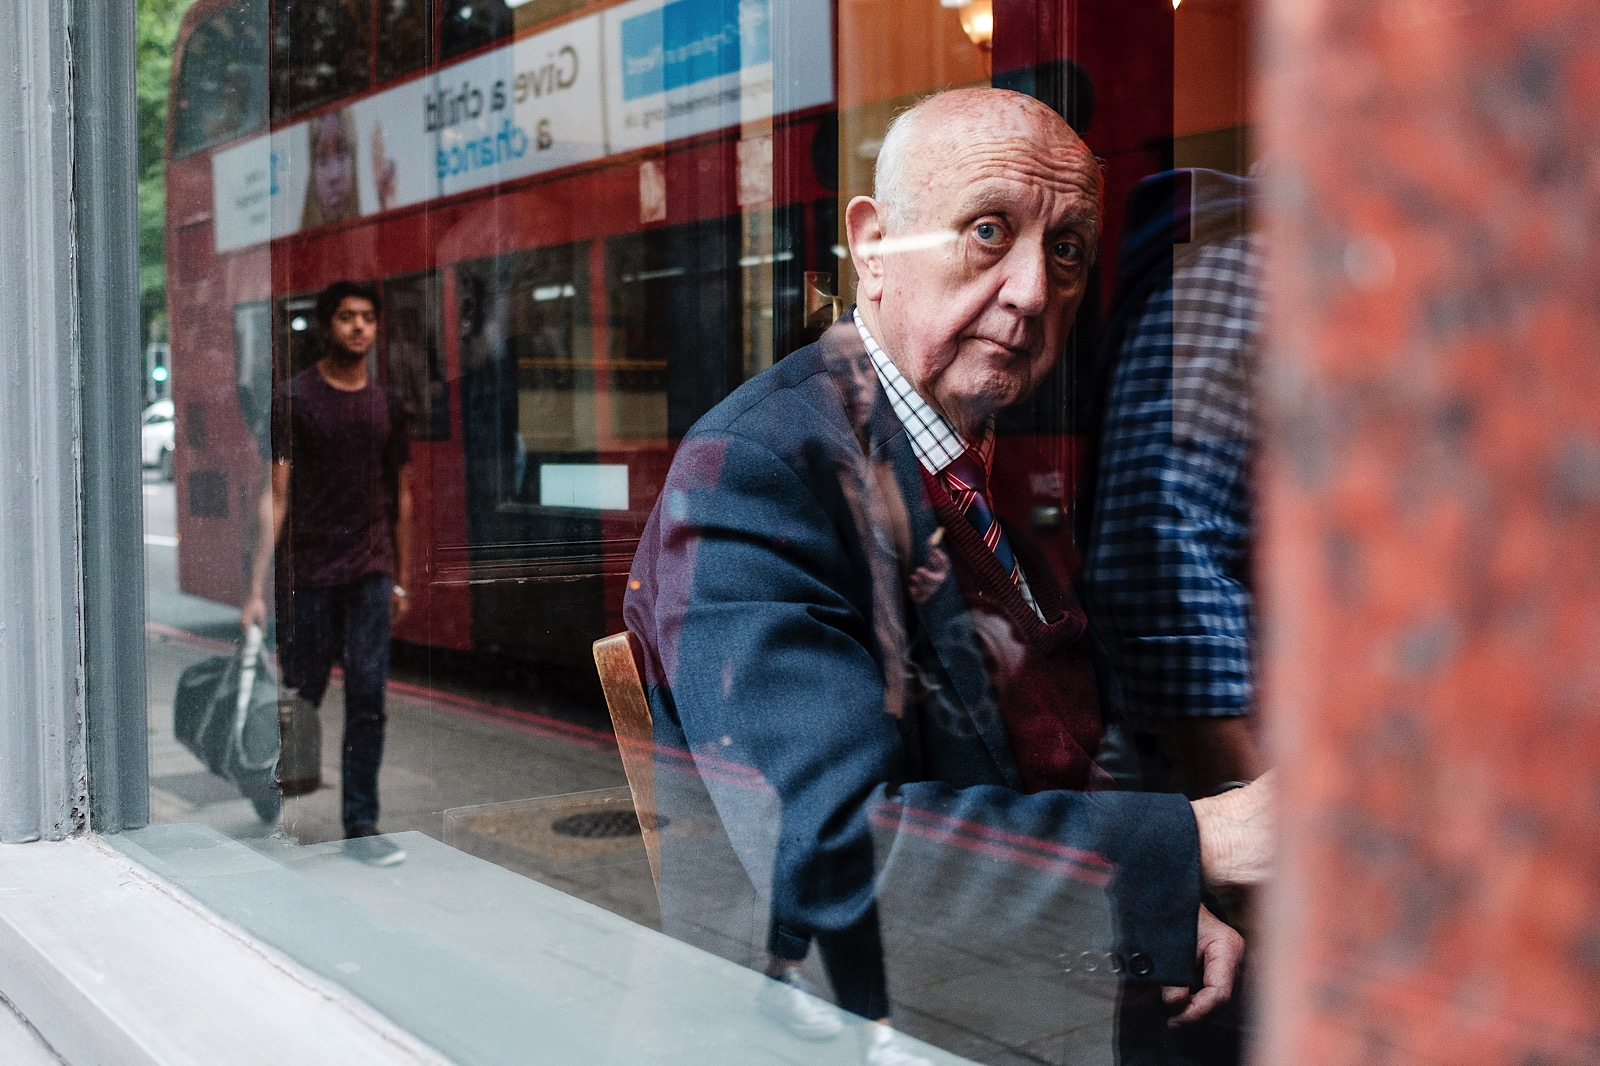 Creative Street Photography of an old man looking through the window, with reflections creating an interesting scene.